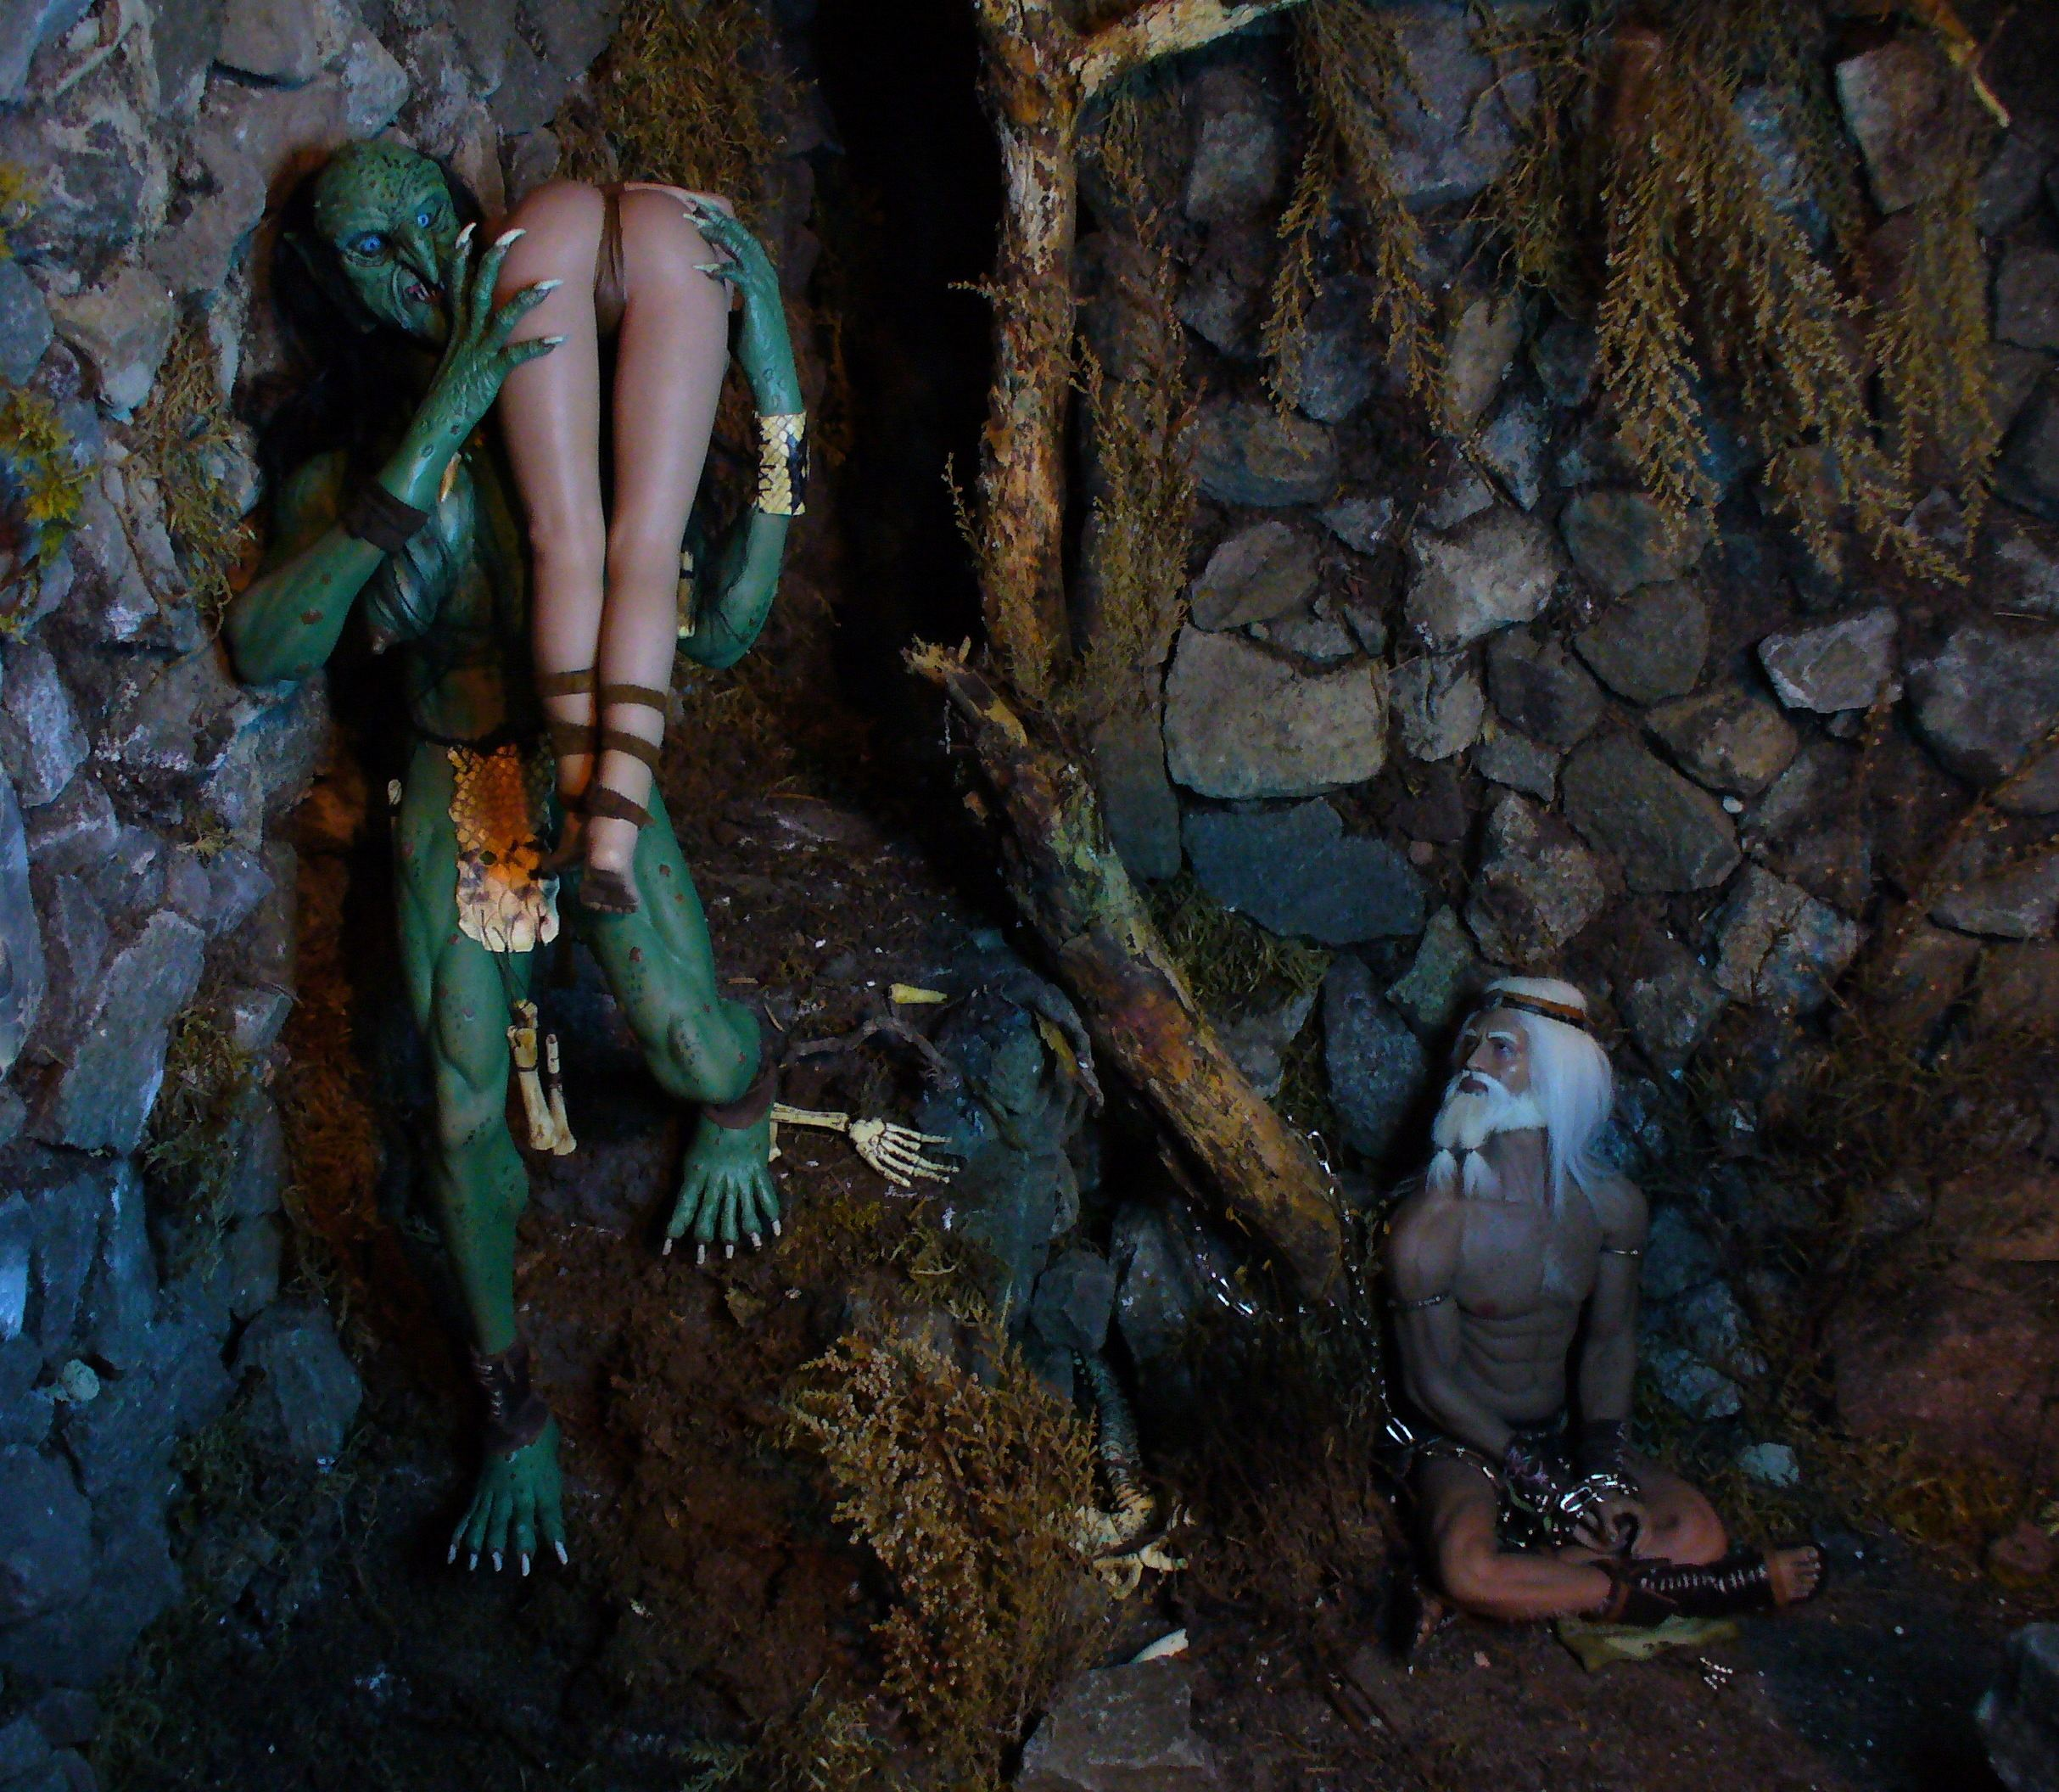 Troll Cave Chapter One and Two: The Escape of Skerf (Blood, violence, sexual content) please adults only (updated July 2019) 110